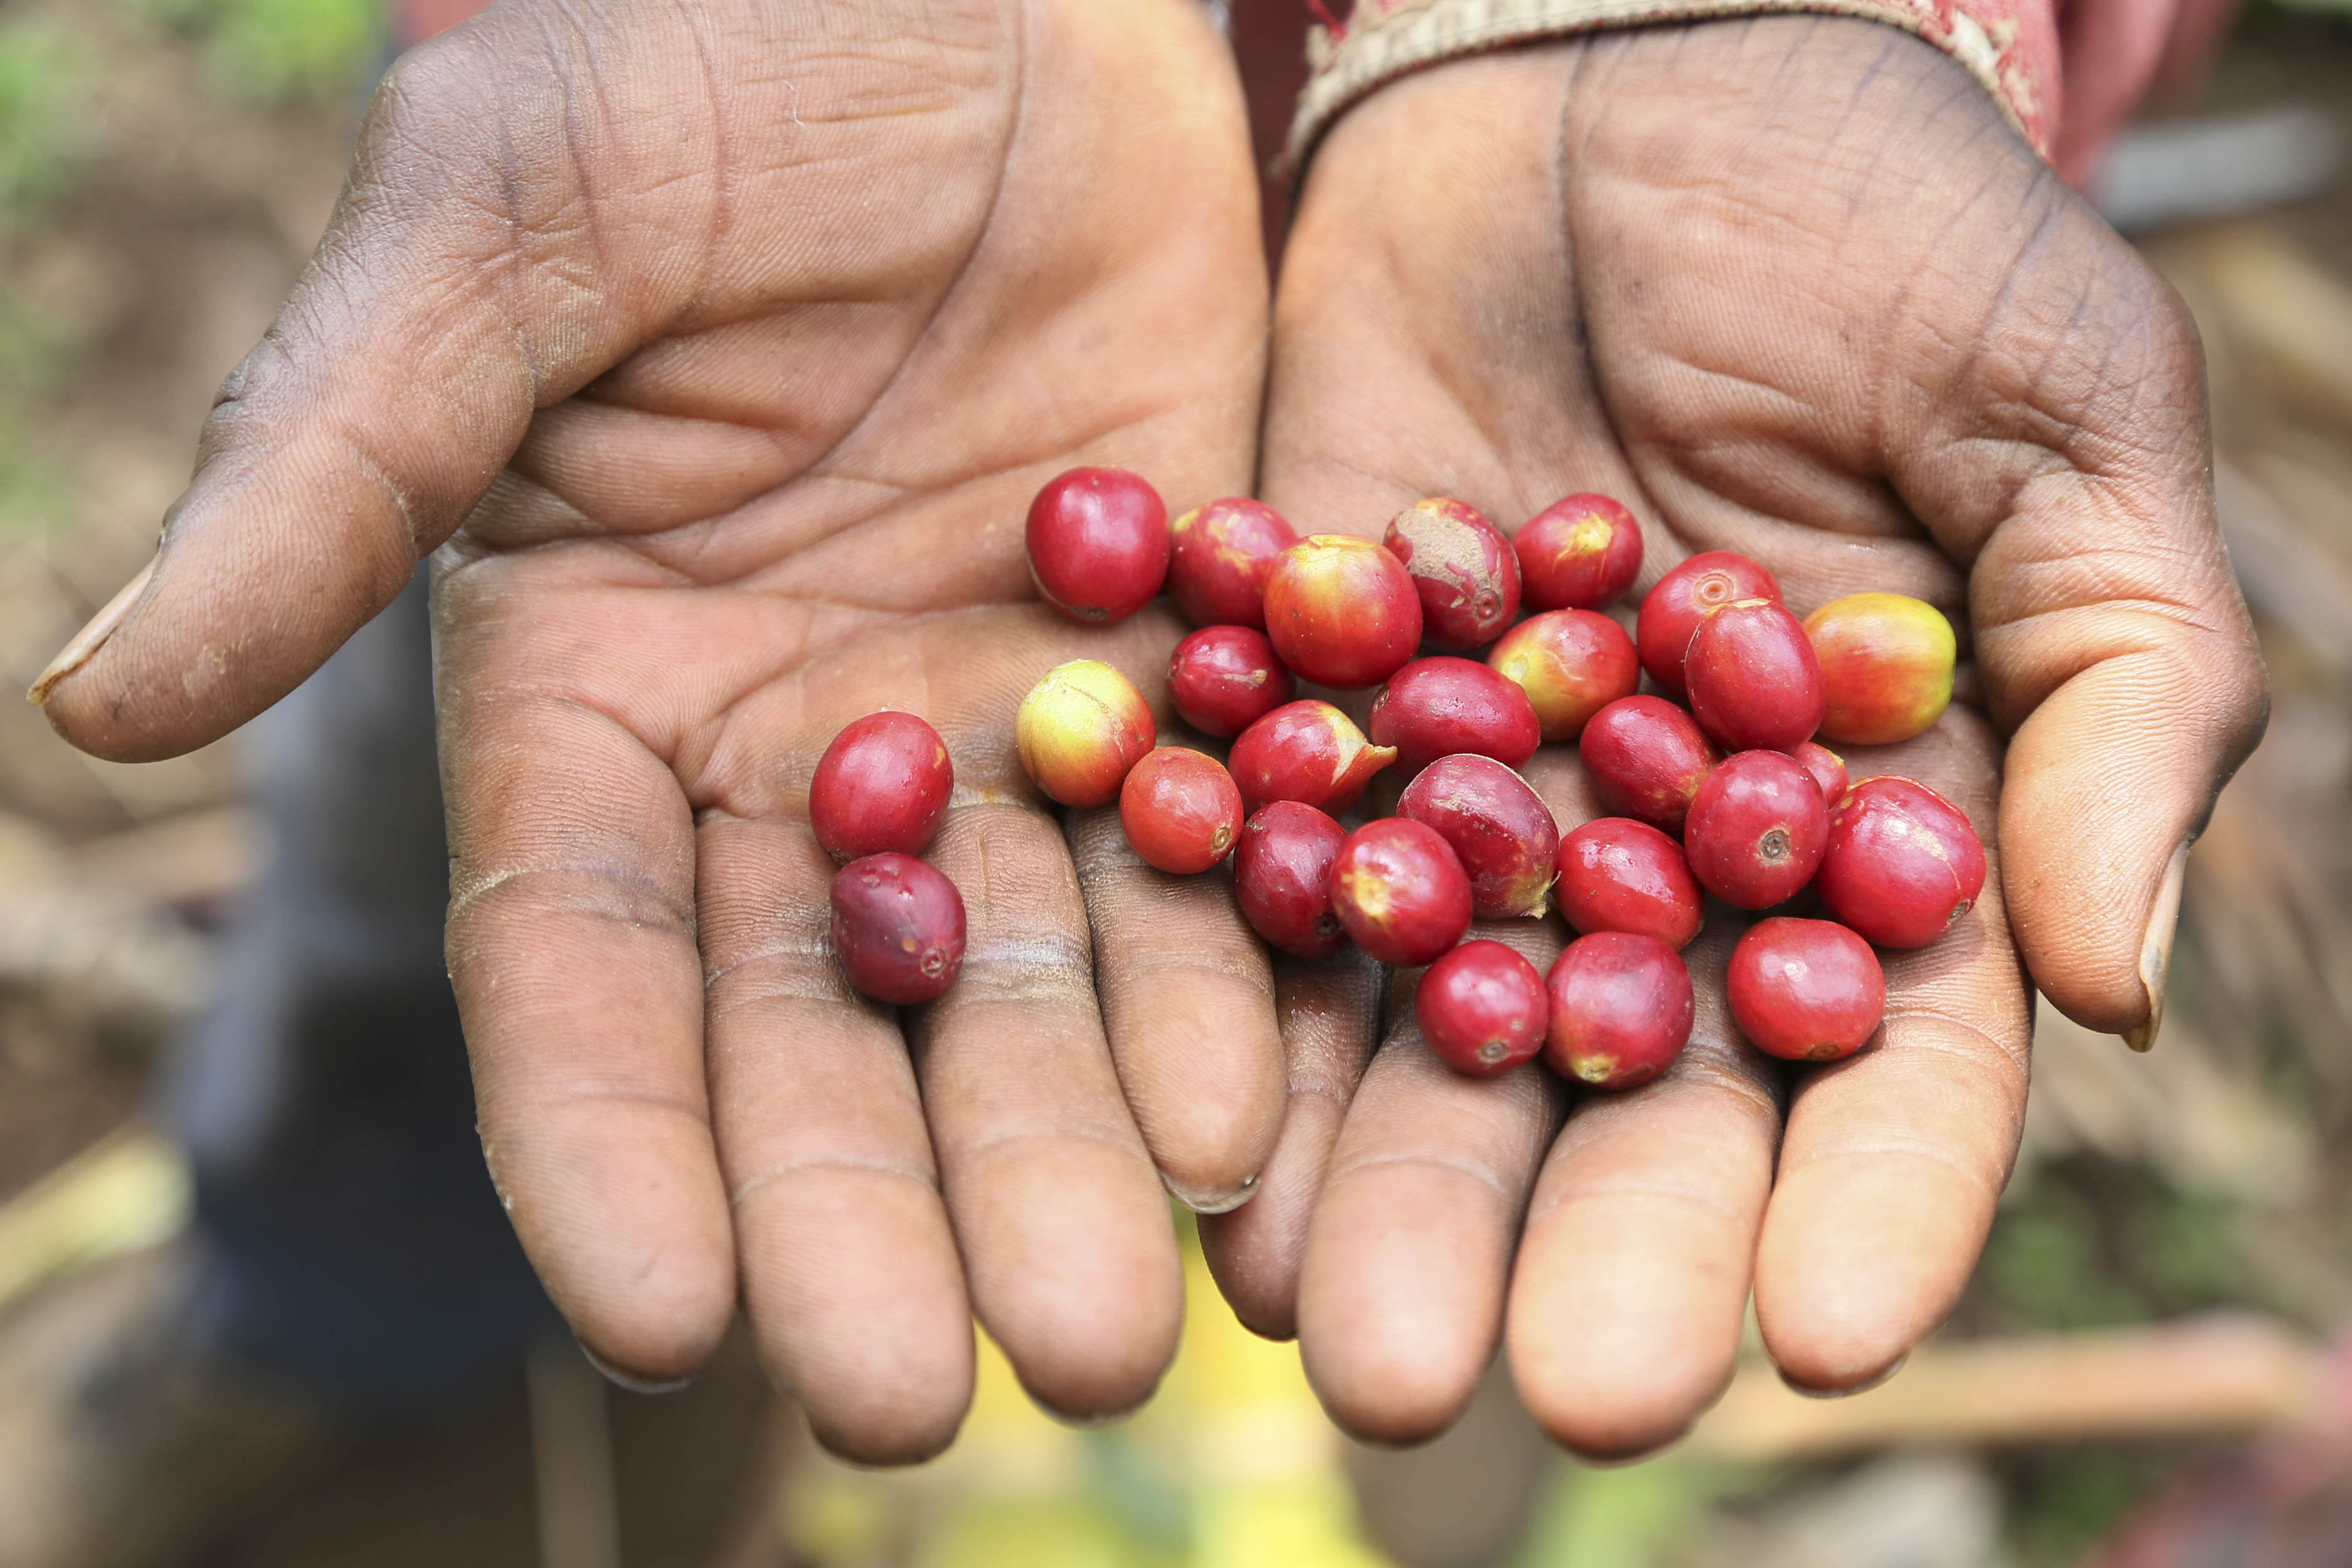 The project aims to expand high-value market opportunities and reduce vulnerability to hunger and environmental degradation for 6,000 smallholder coffee farmers. Photo by Michael Stulman/CRS